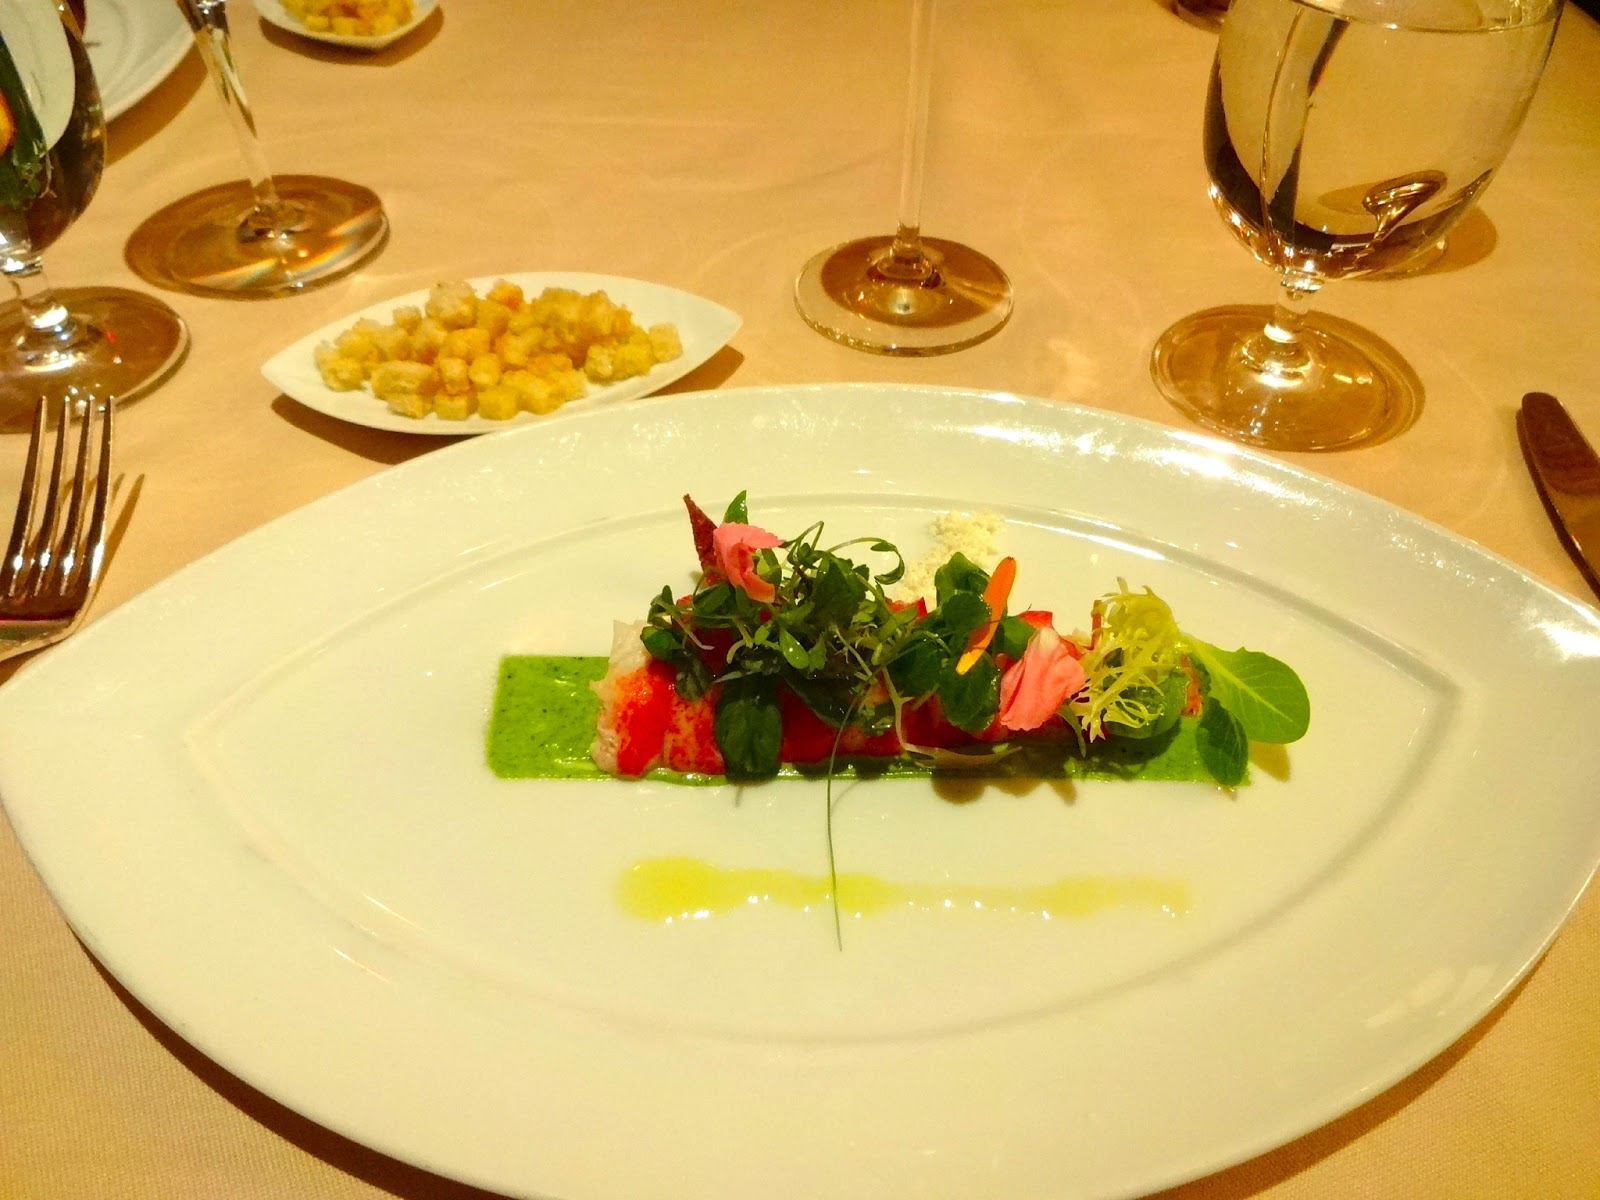 Victoria & Albert's Lobster Salad